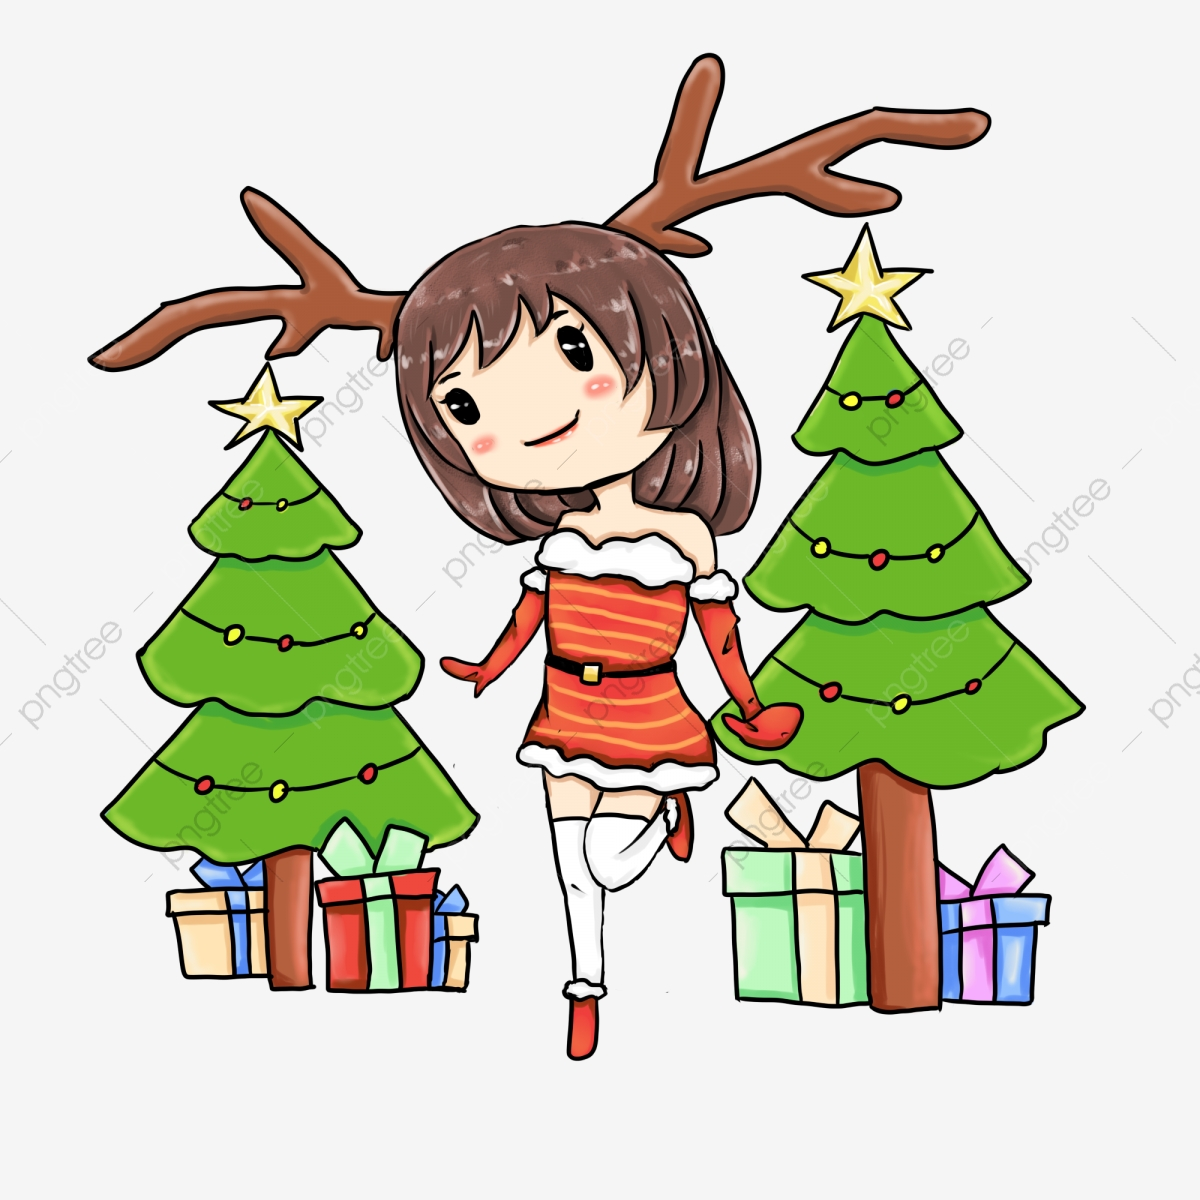 Christmas Giving Clipart.Cute Girl Gift Giving Illustration Christmas Winter